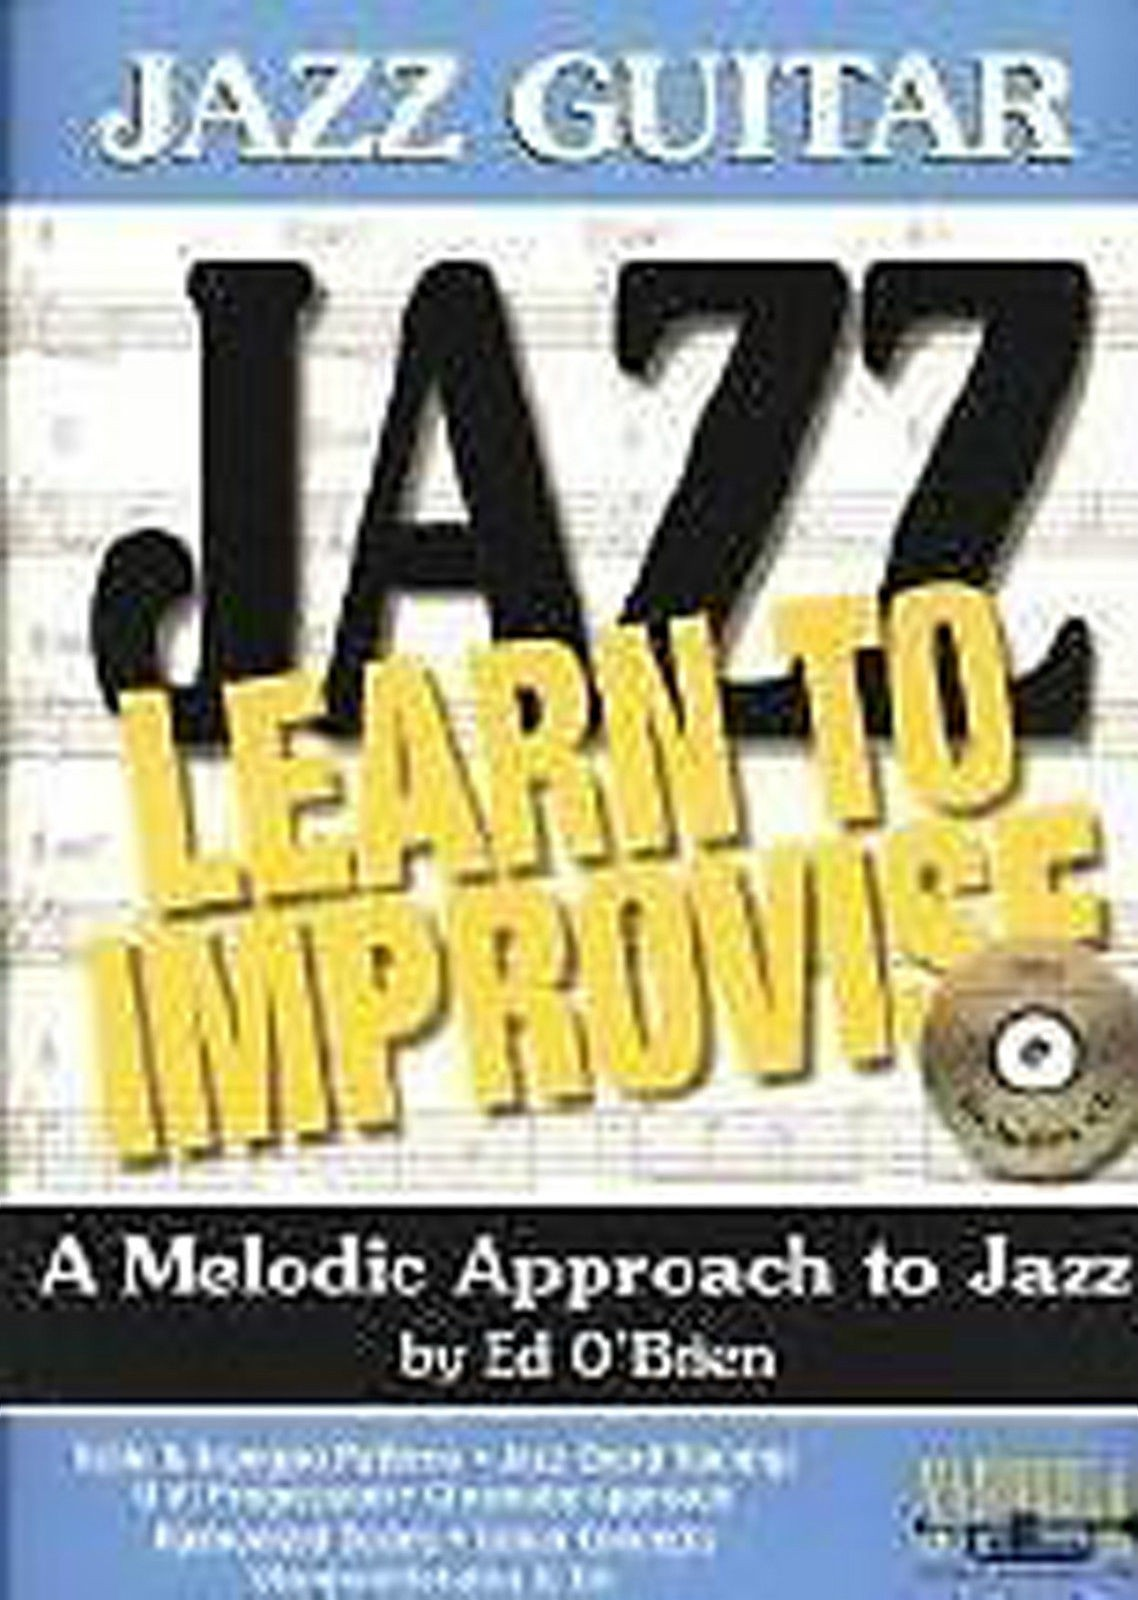 Jazz Guitar Learn To Improvise A Melodic Approach Ed O'Brien Book & CD B52